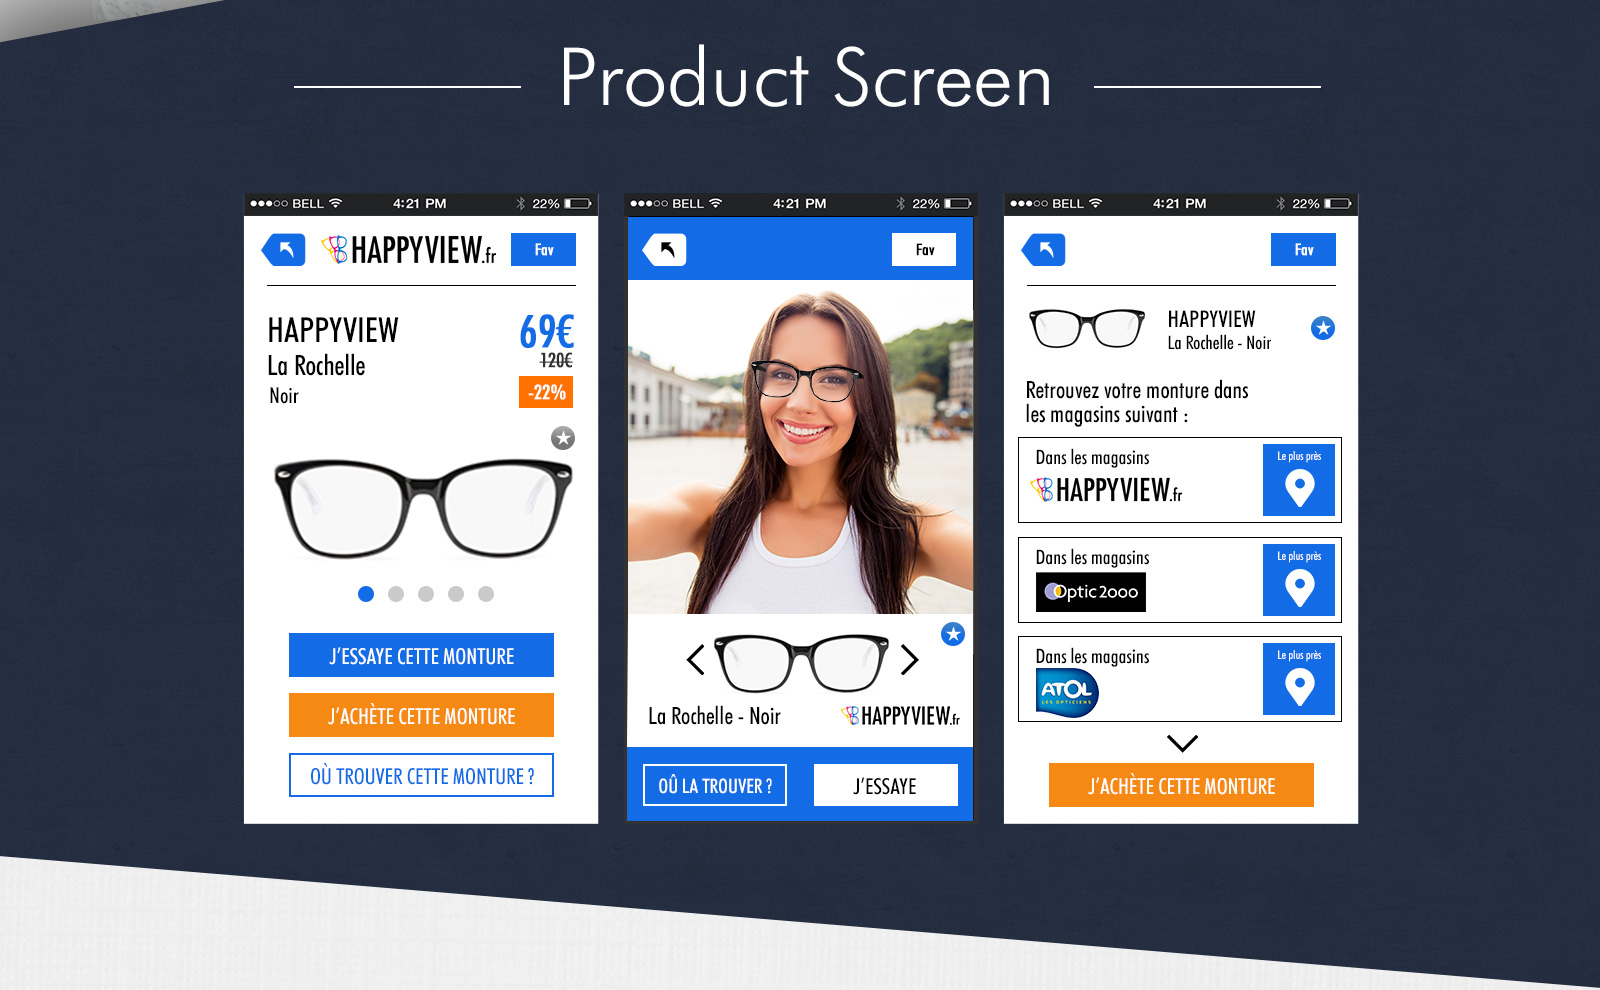 Product Screen Page